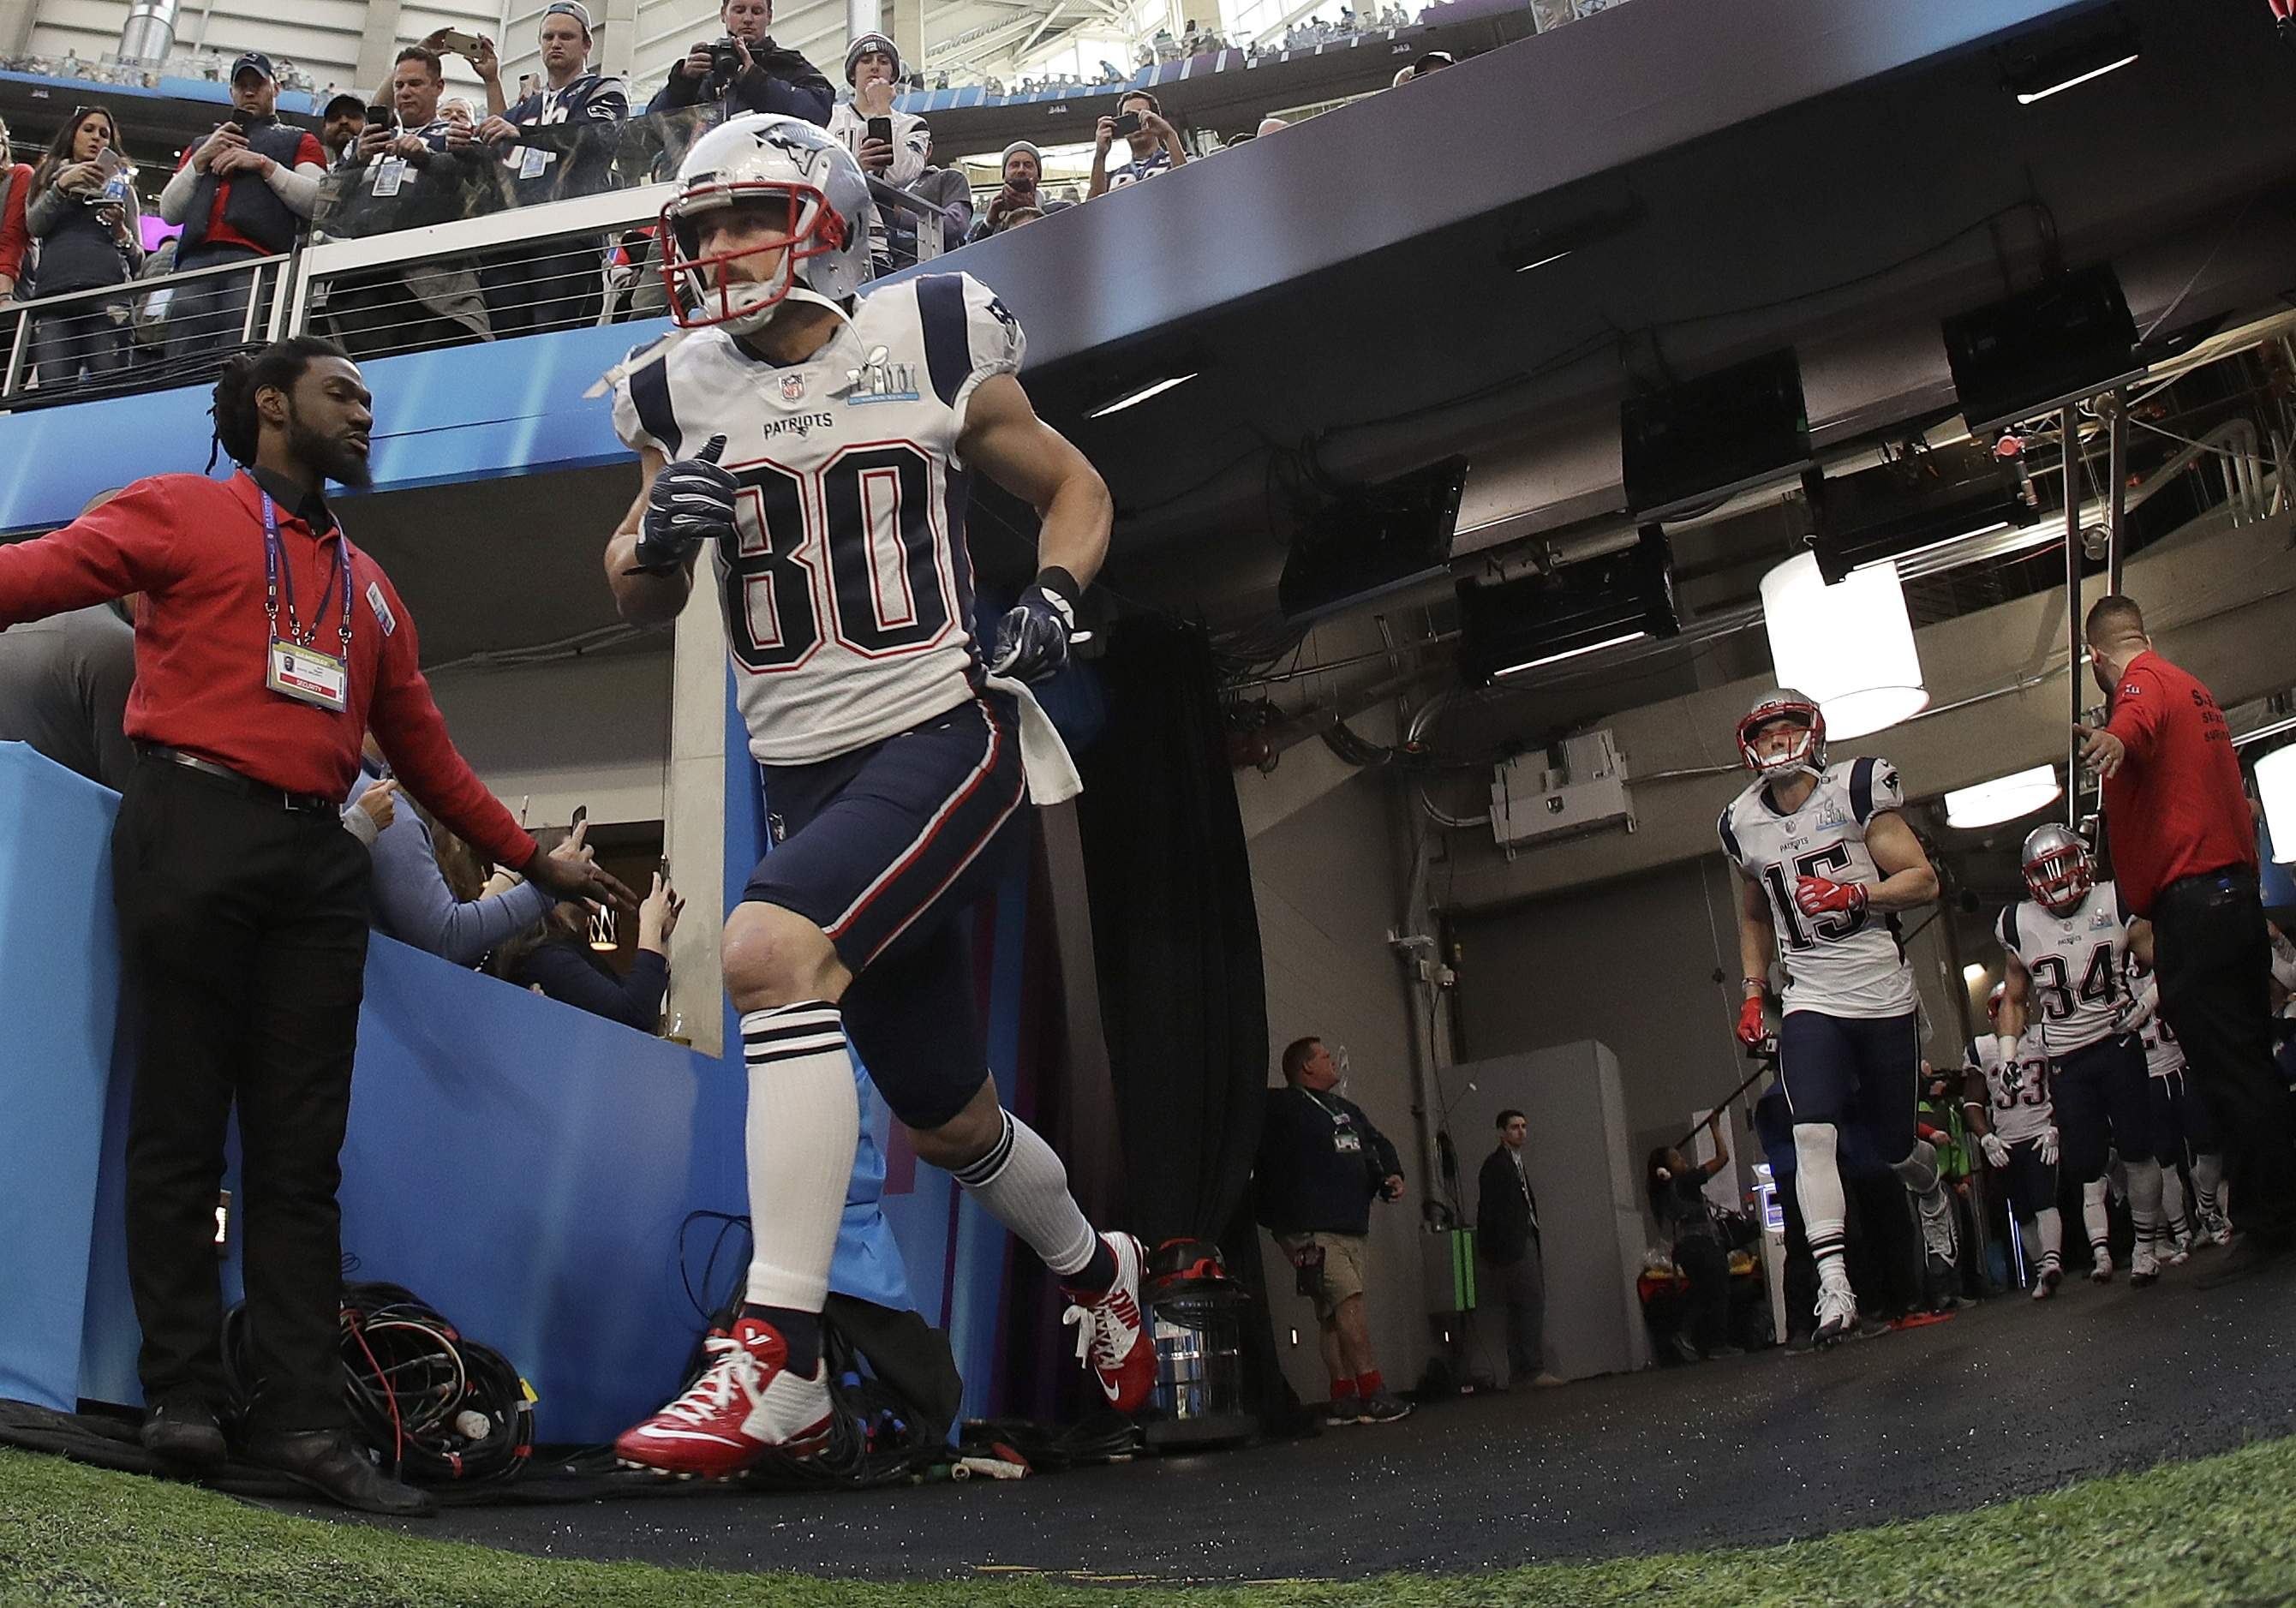 New England Patriots' Danny Amendola runs out of the tunnel before the NFL Super Bowl 52 football game against the Philadelphia Eagles Sunday, Feb. 4, 2018, in Minneapolis. (AP Photo/Matt Slocum)